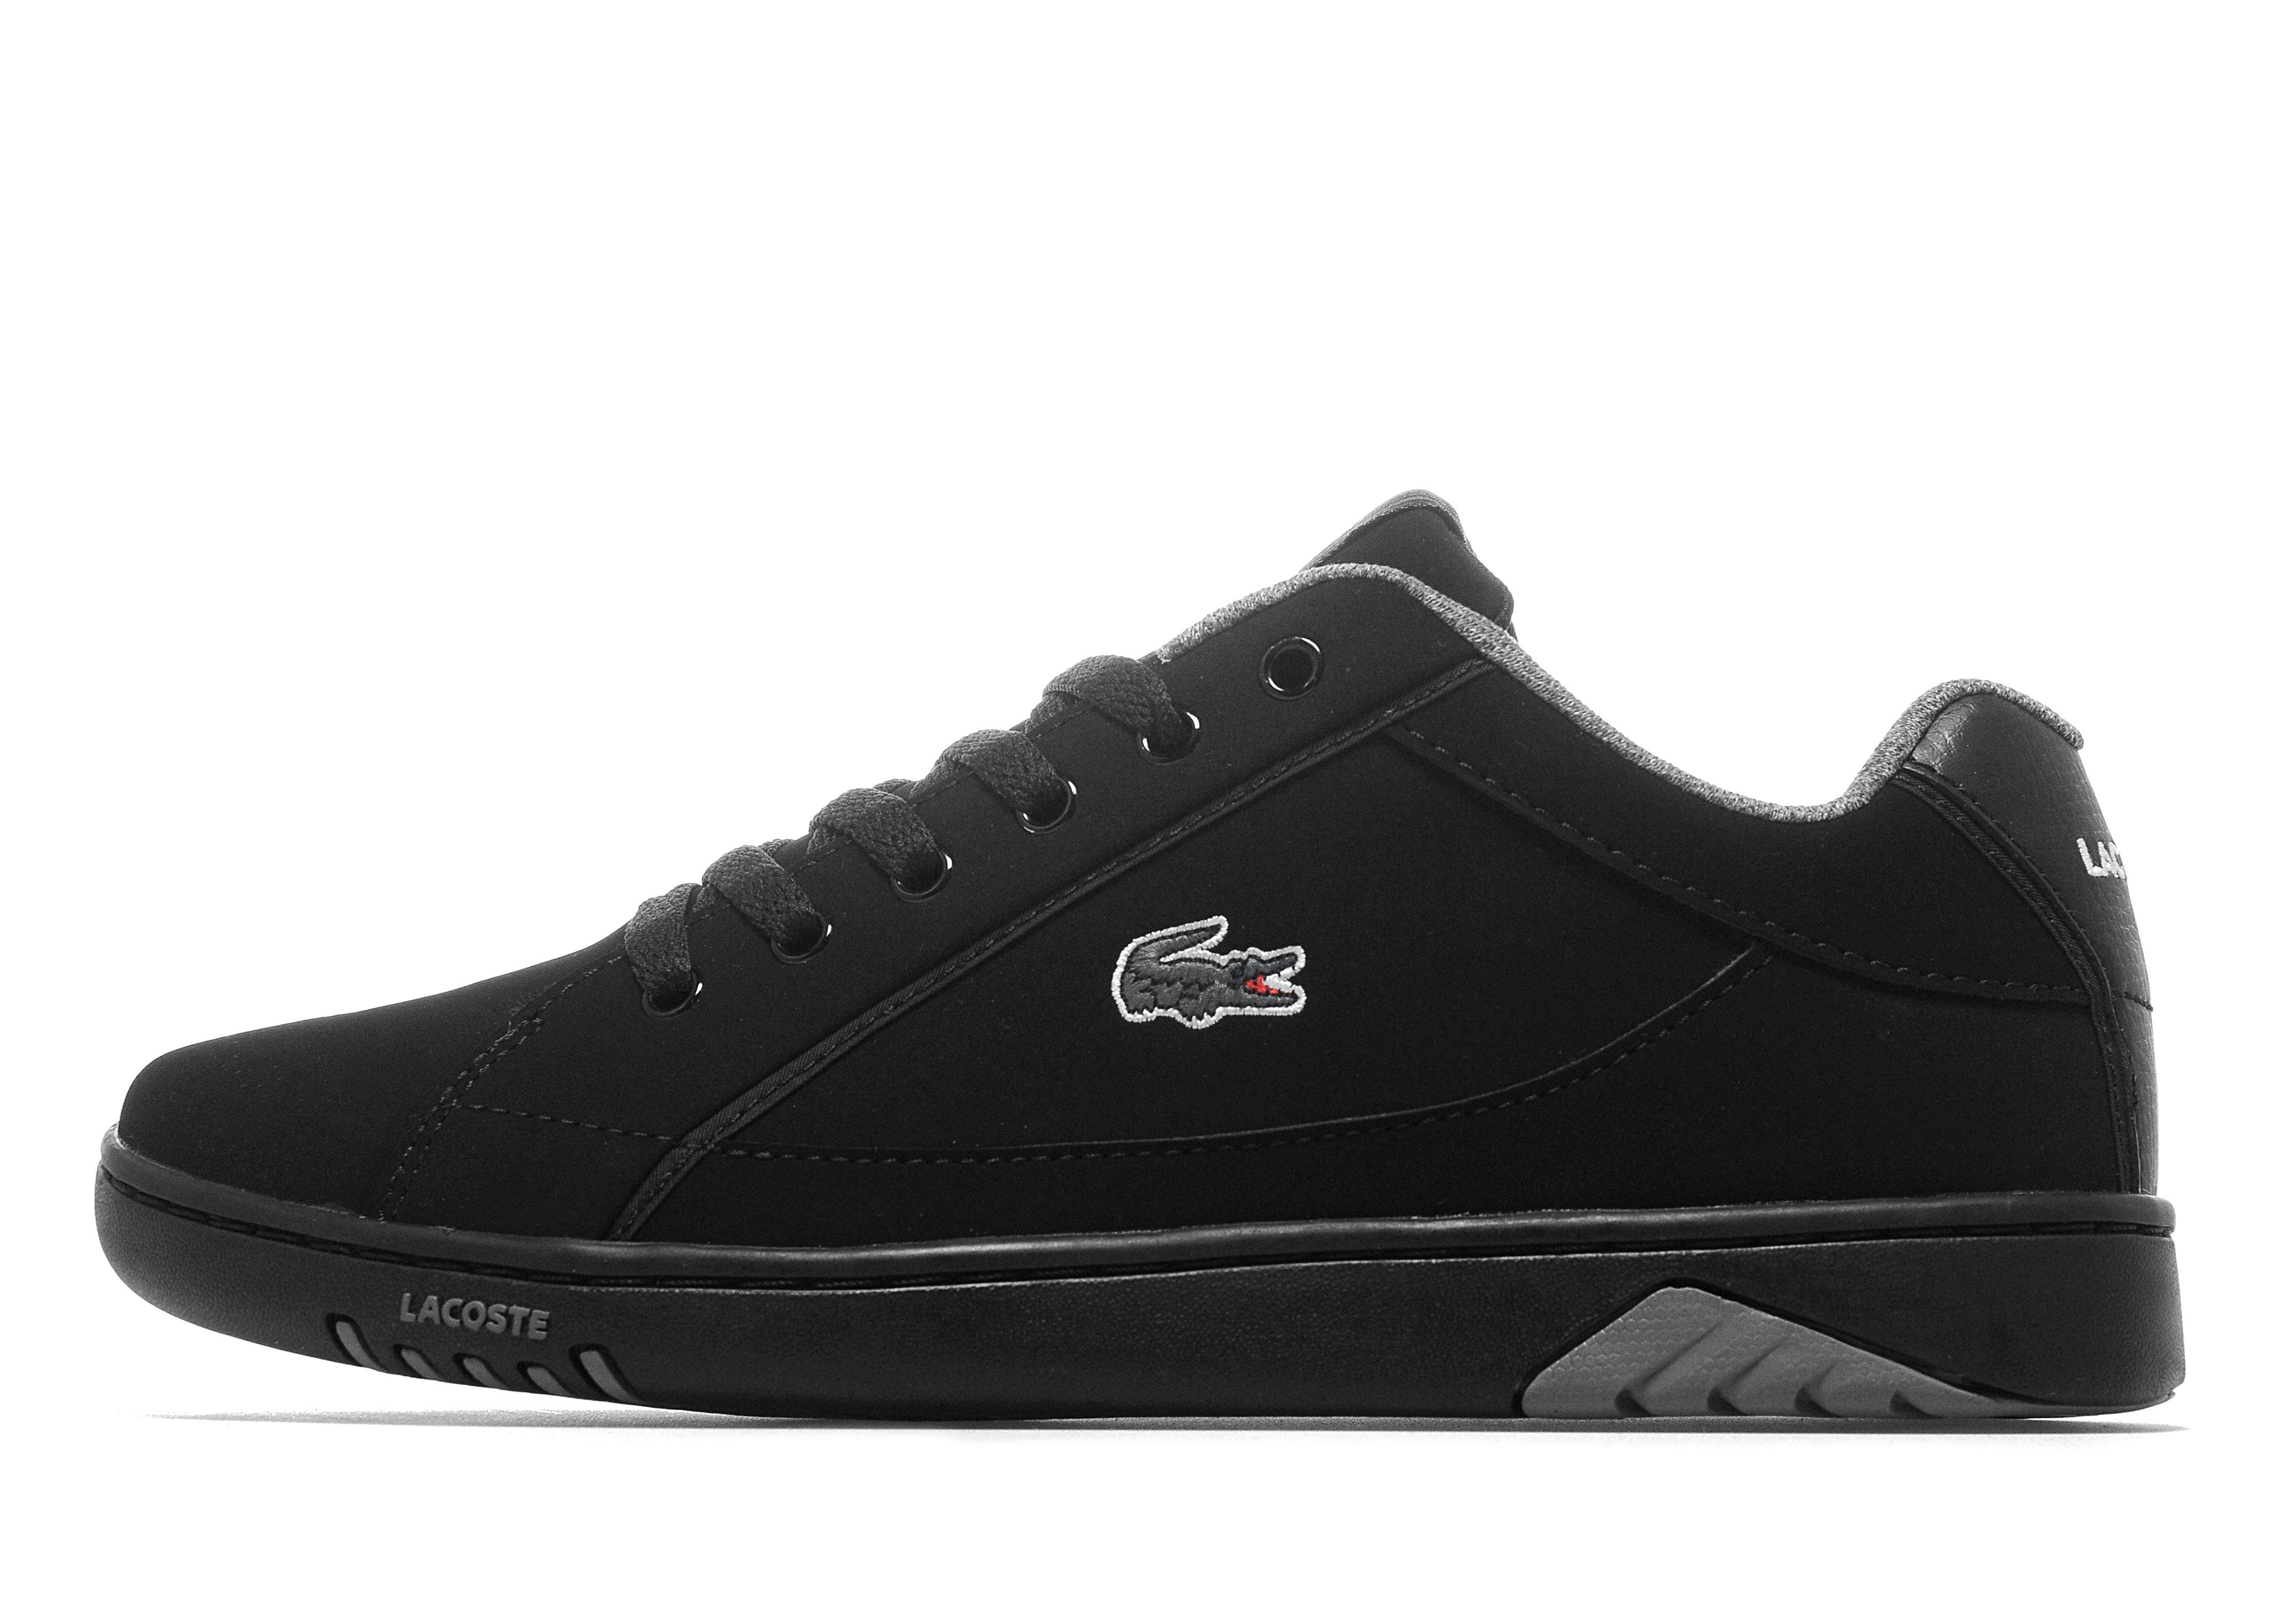 buy popular 2b424 44821 60%OFF Lacoste Deviation   JD Sports. Lacoste clean up again with these  exclusive men s ...